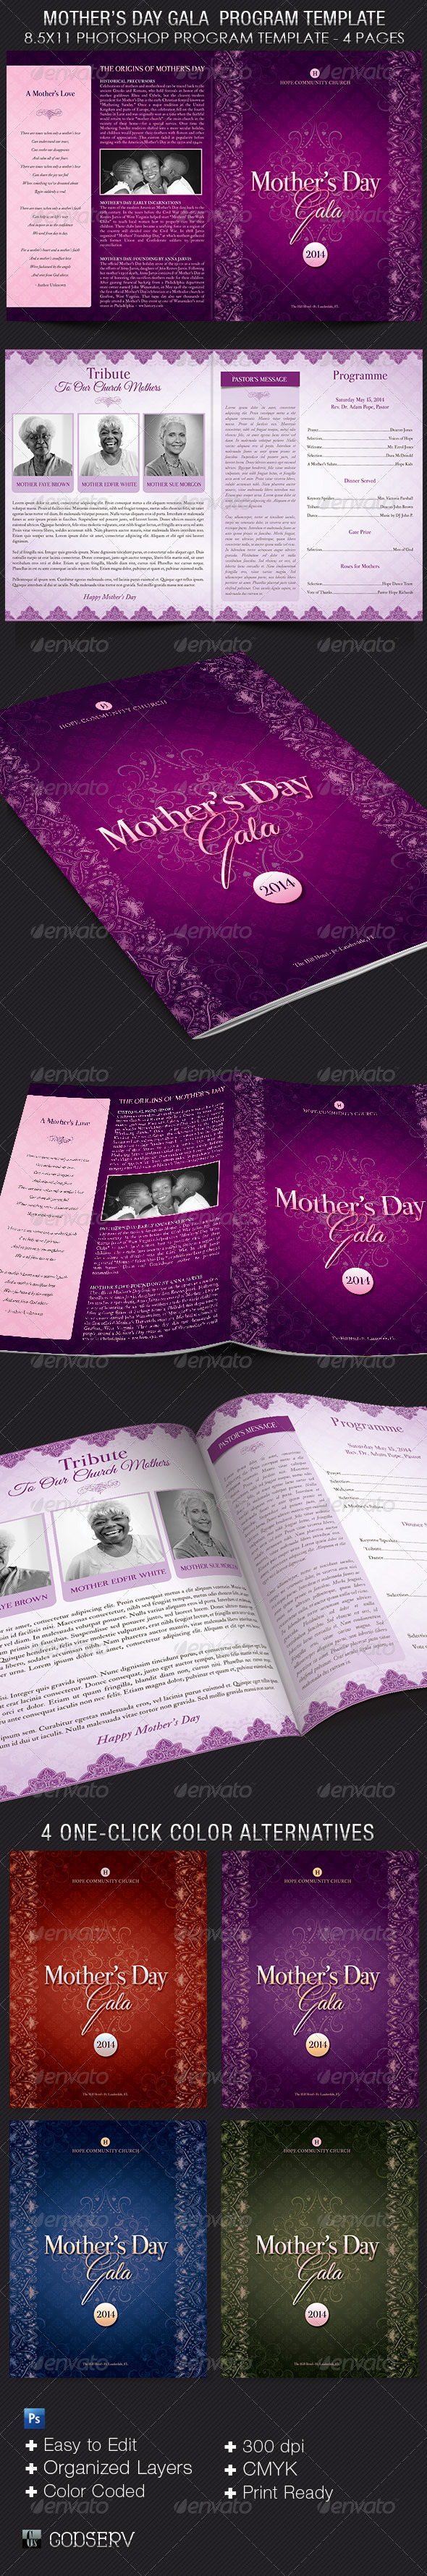 Mother's Day Gala Program Template - Informational Brochures